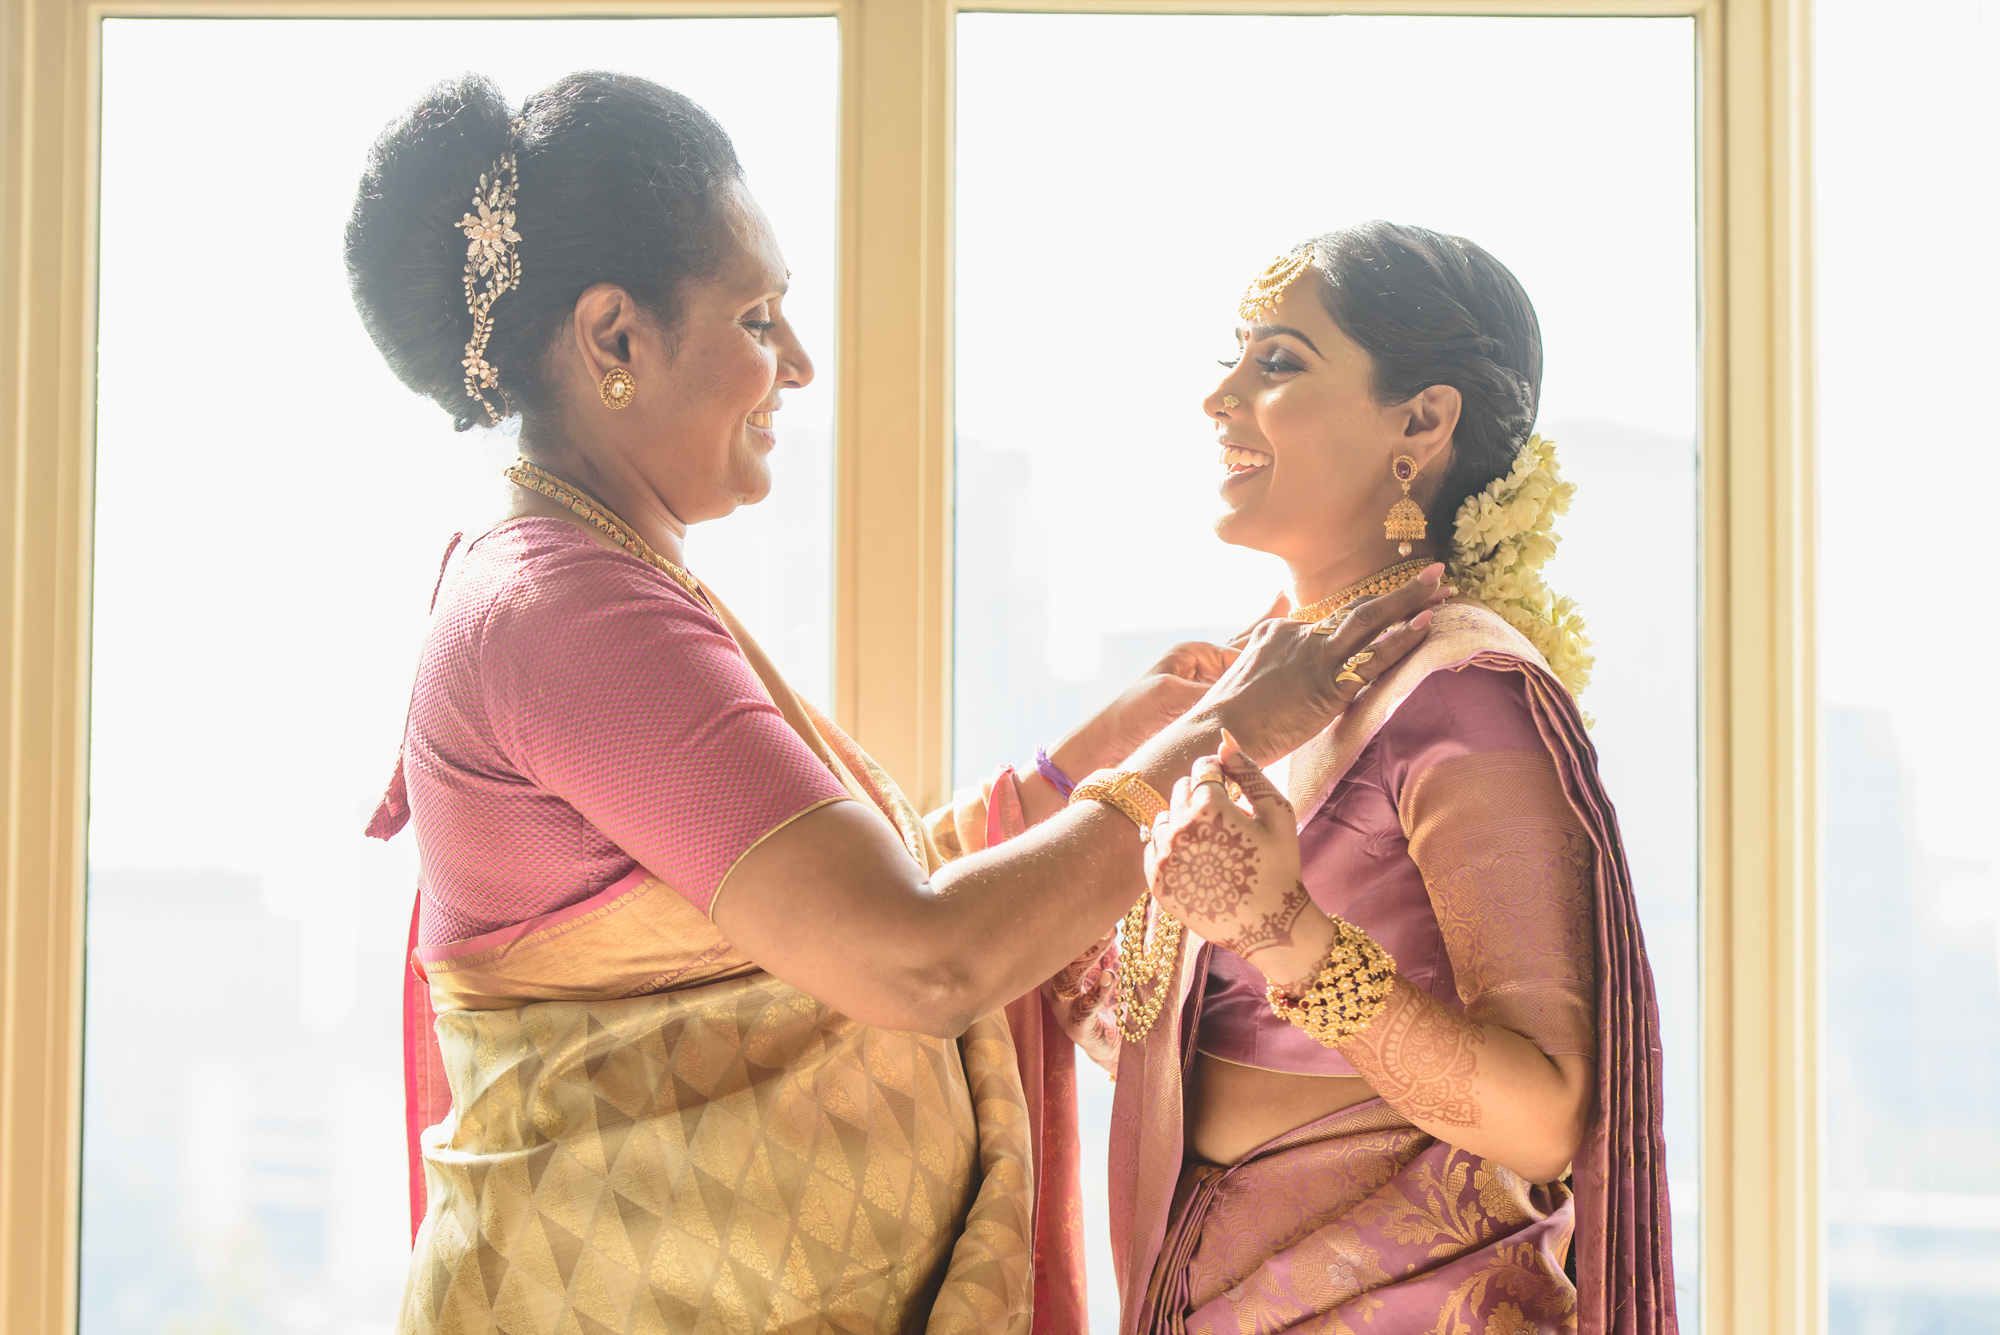 Tamil Gujrati hindu wedding photography photographer london the savoy -16.jpg